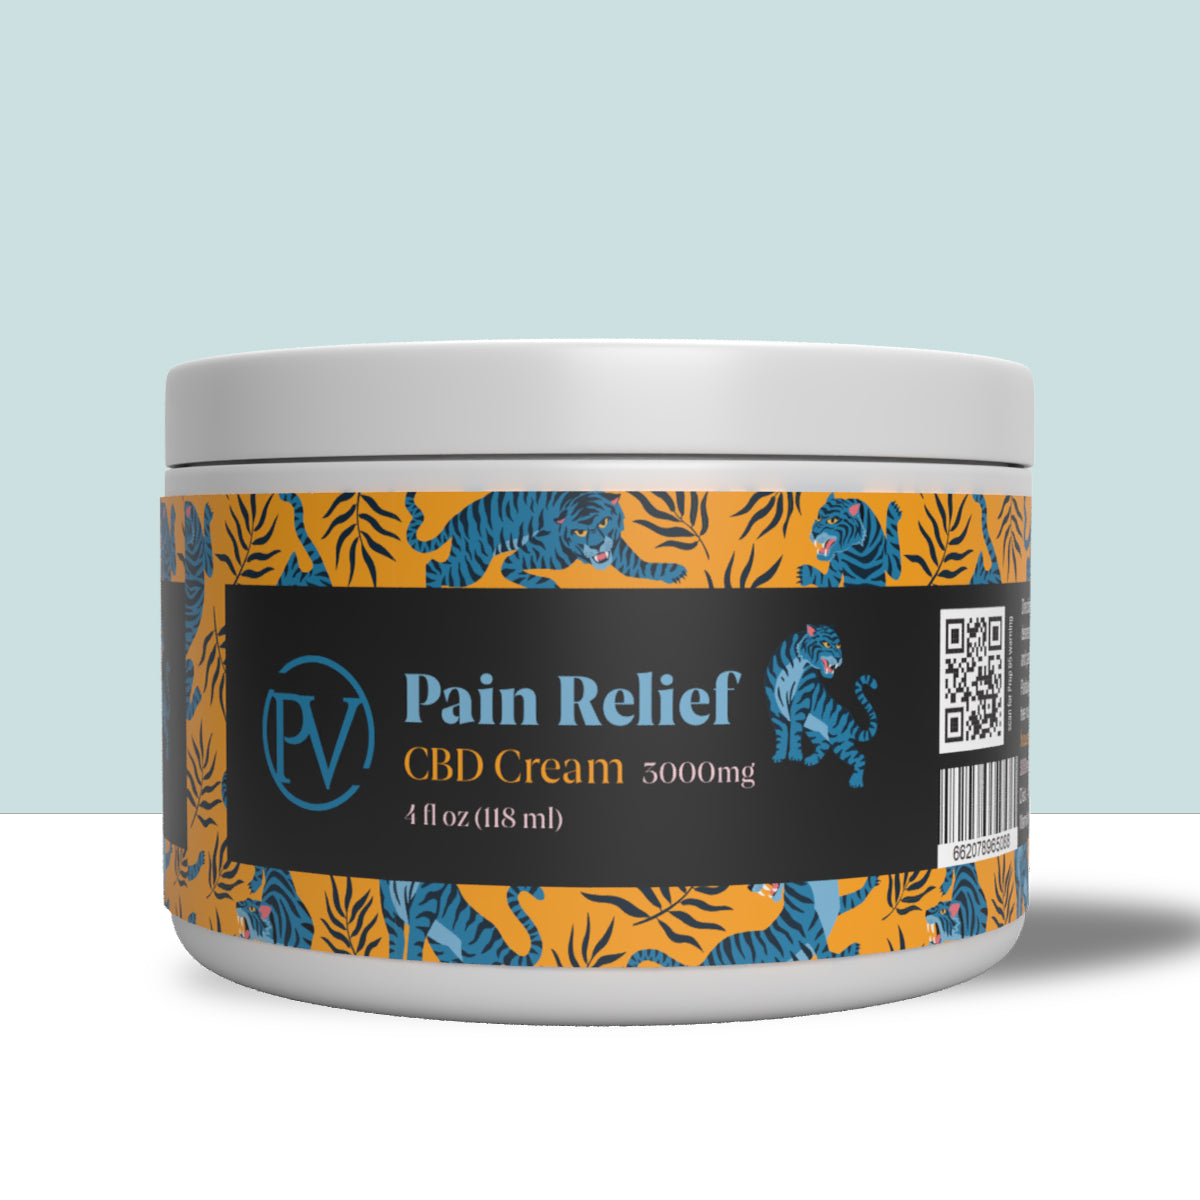 Pain Relief Cream 5000mg